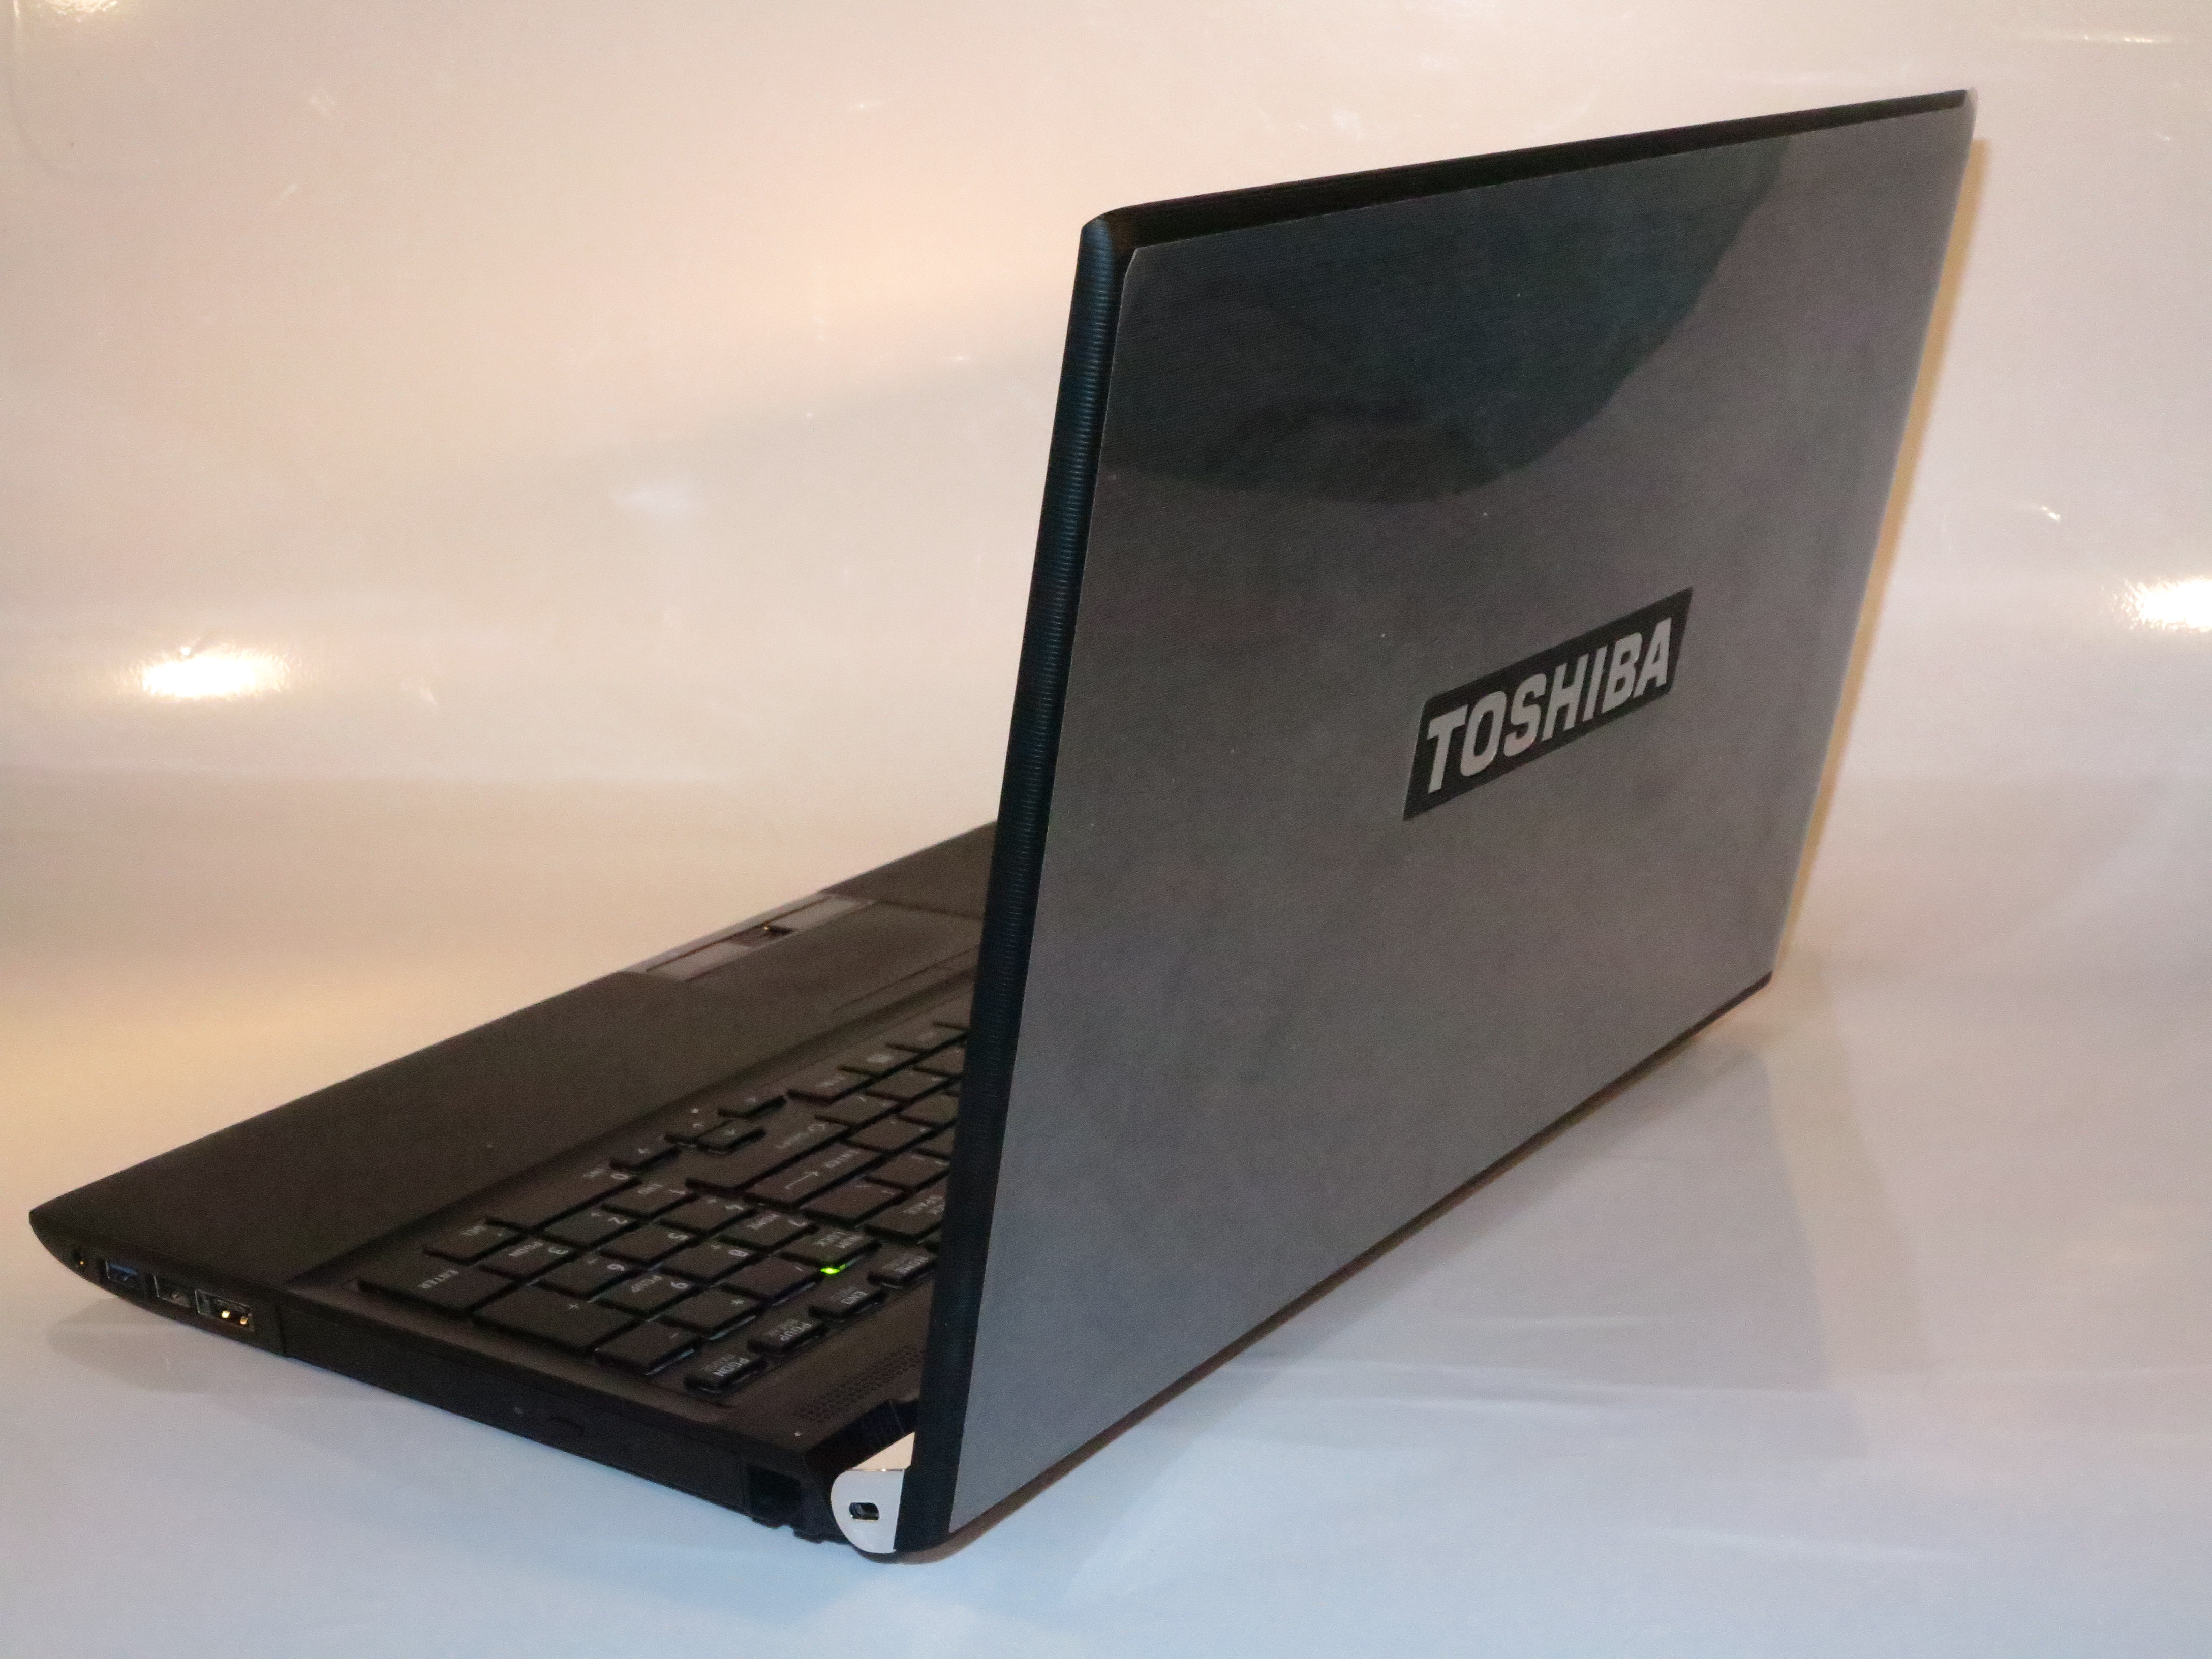 Toshiba Tecra R950 business laptop lid view